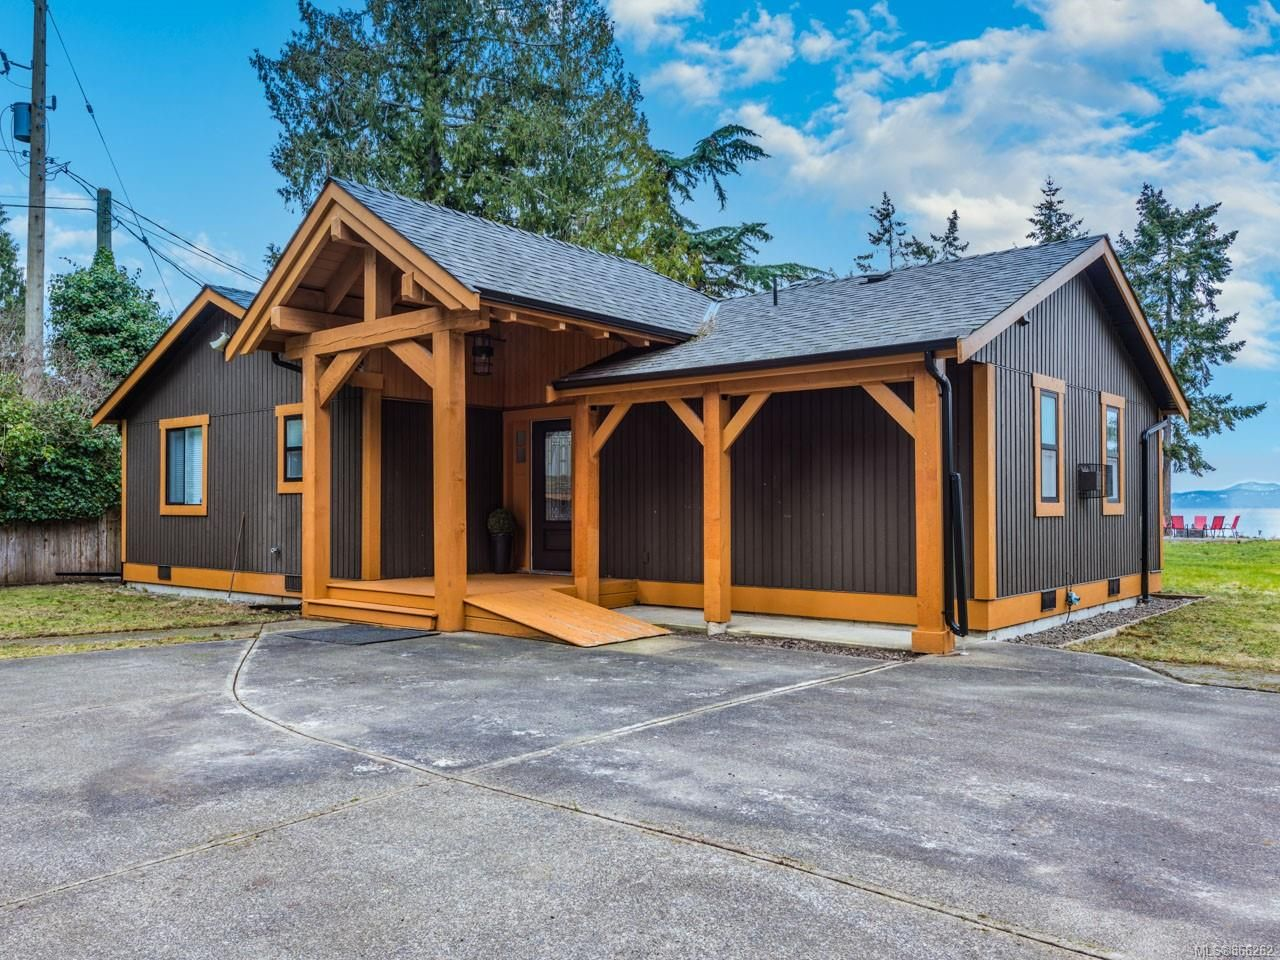 Main Photo: 1505 Bay Dr in : PQ Nanoose House for sale (Parksville/Qualicum)  : MLS®# 866262